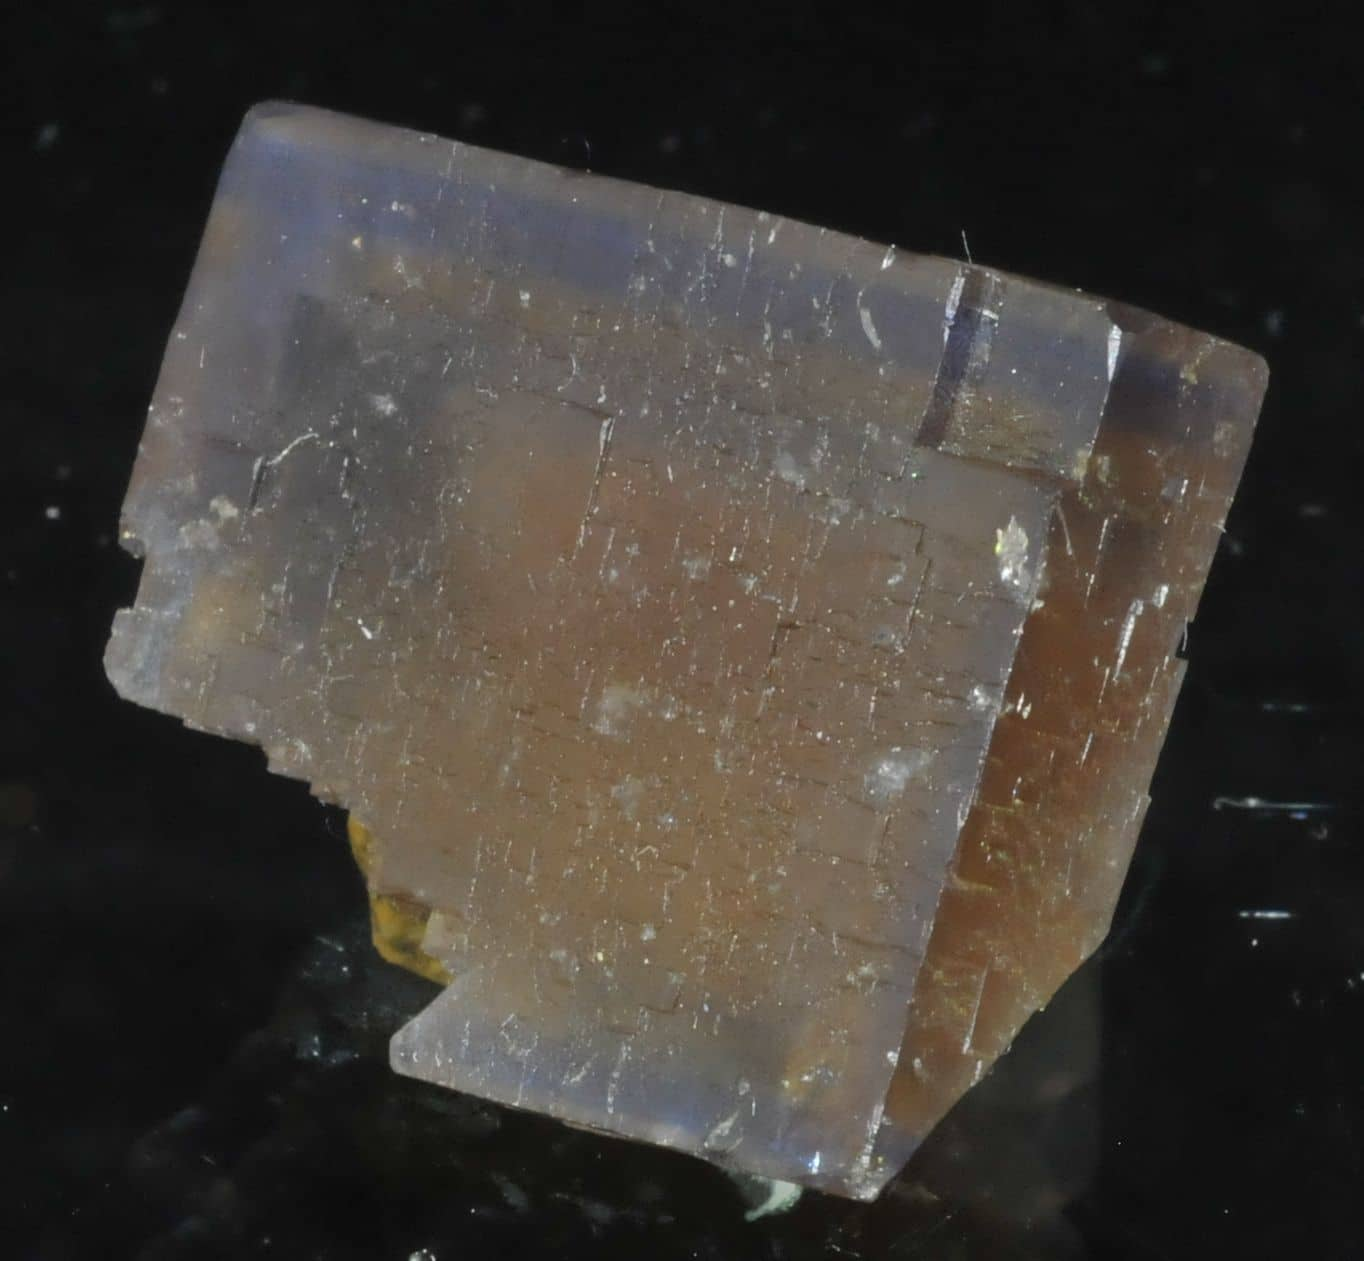 Fluorite from the Valzergues mine (Aveyron, France)